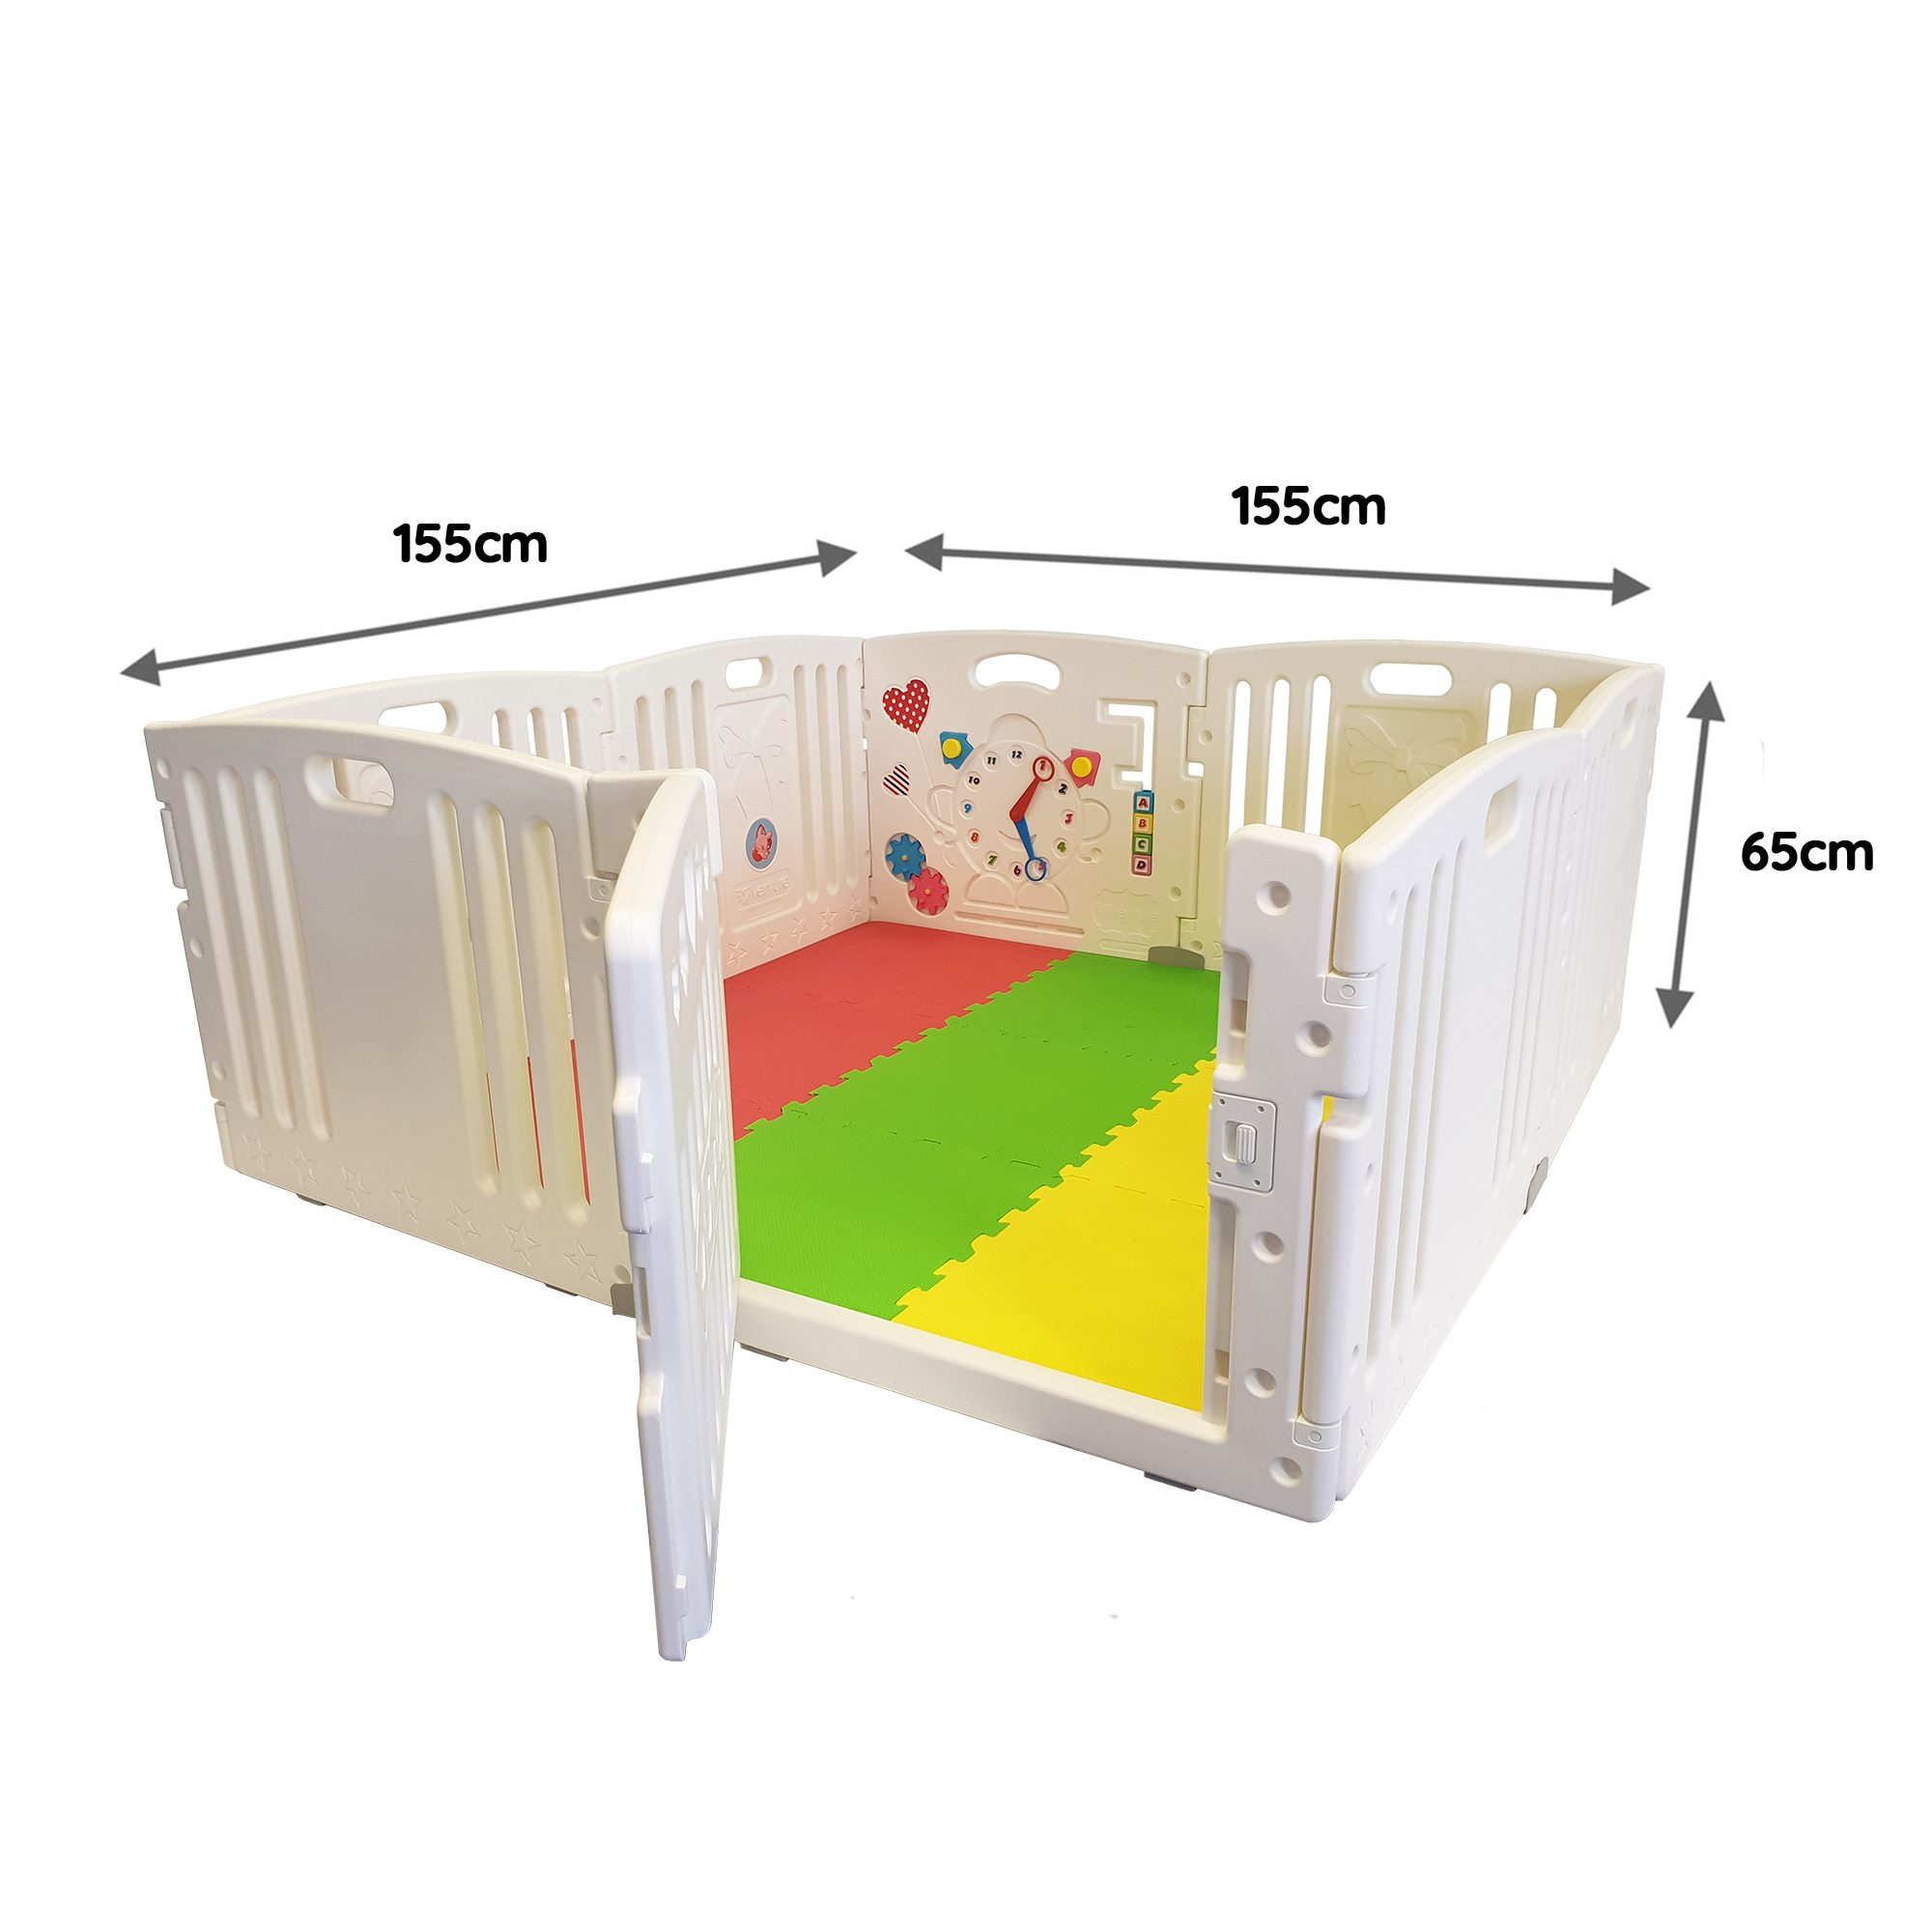 Venture All Stars baby playpen dimensions